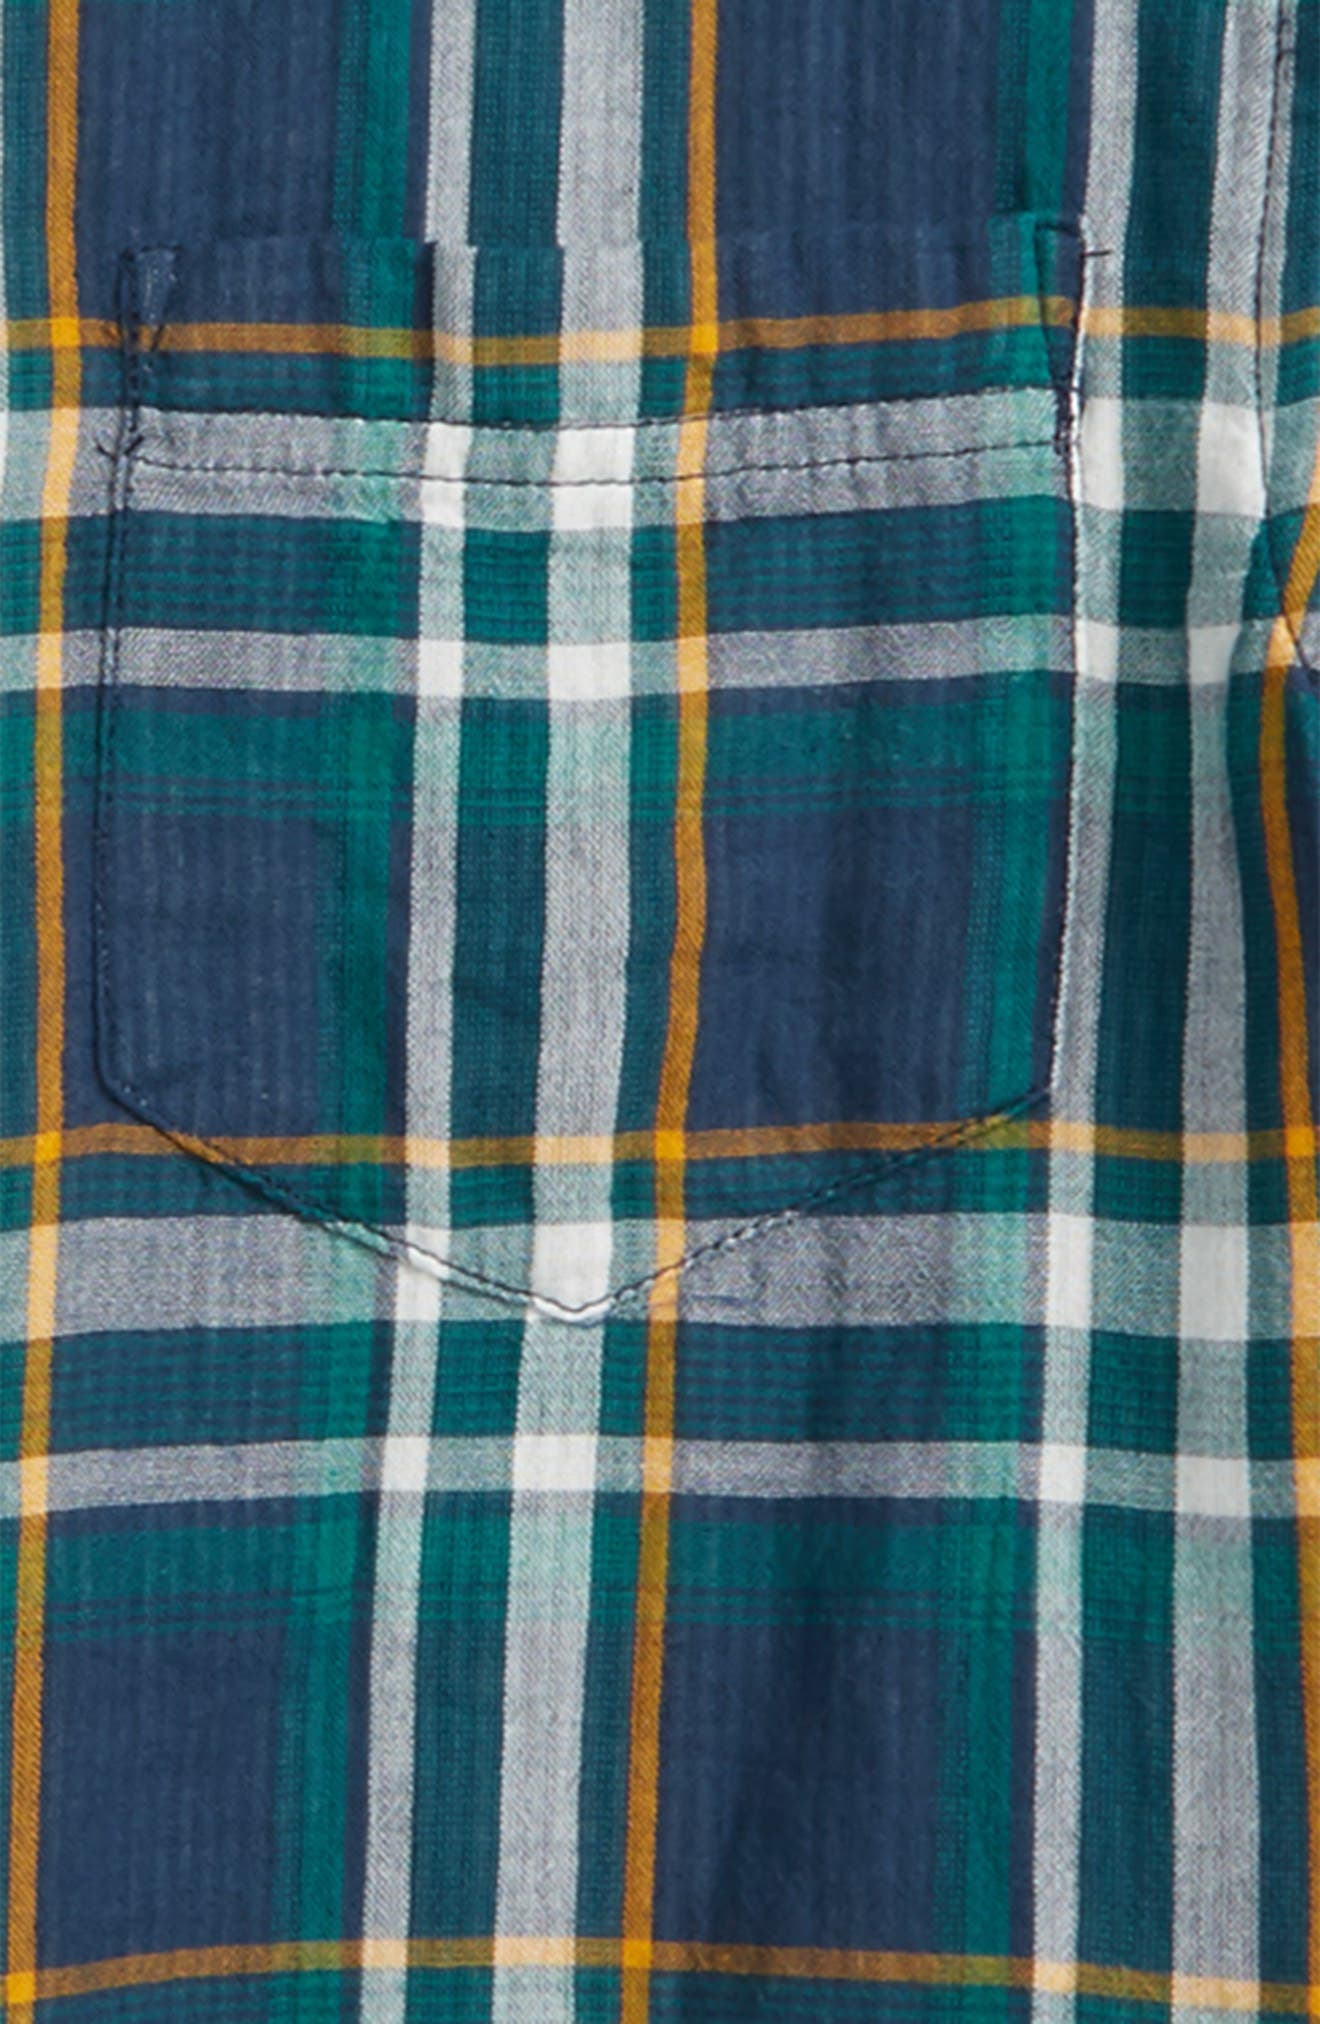 Plaid Woven Shirt,                             Alternate thumbnail 2, color,                             Navy Denim Multi Plaid